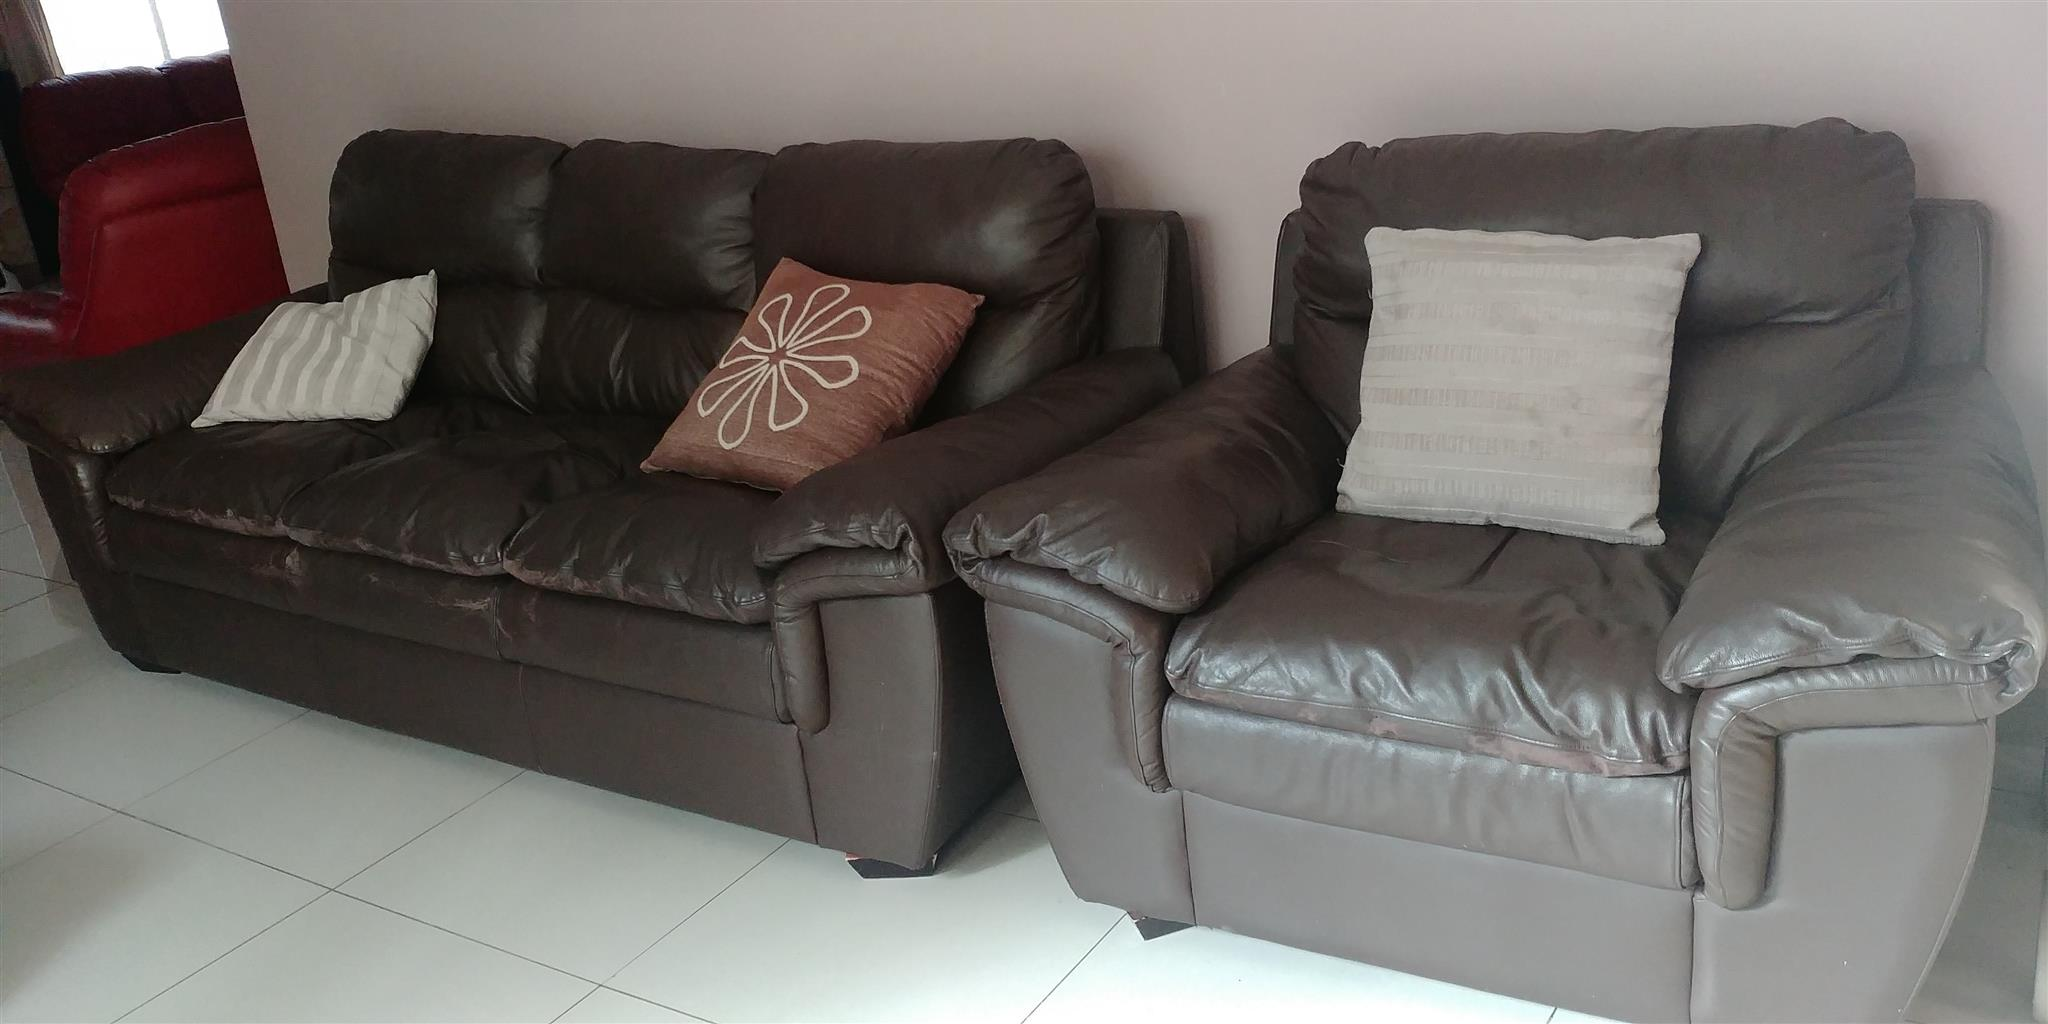 Used couches for sale at R4800.00